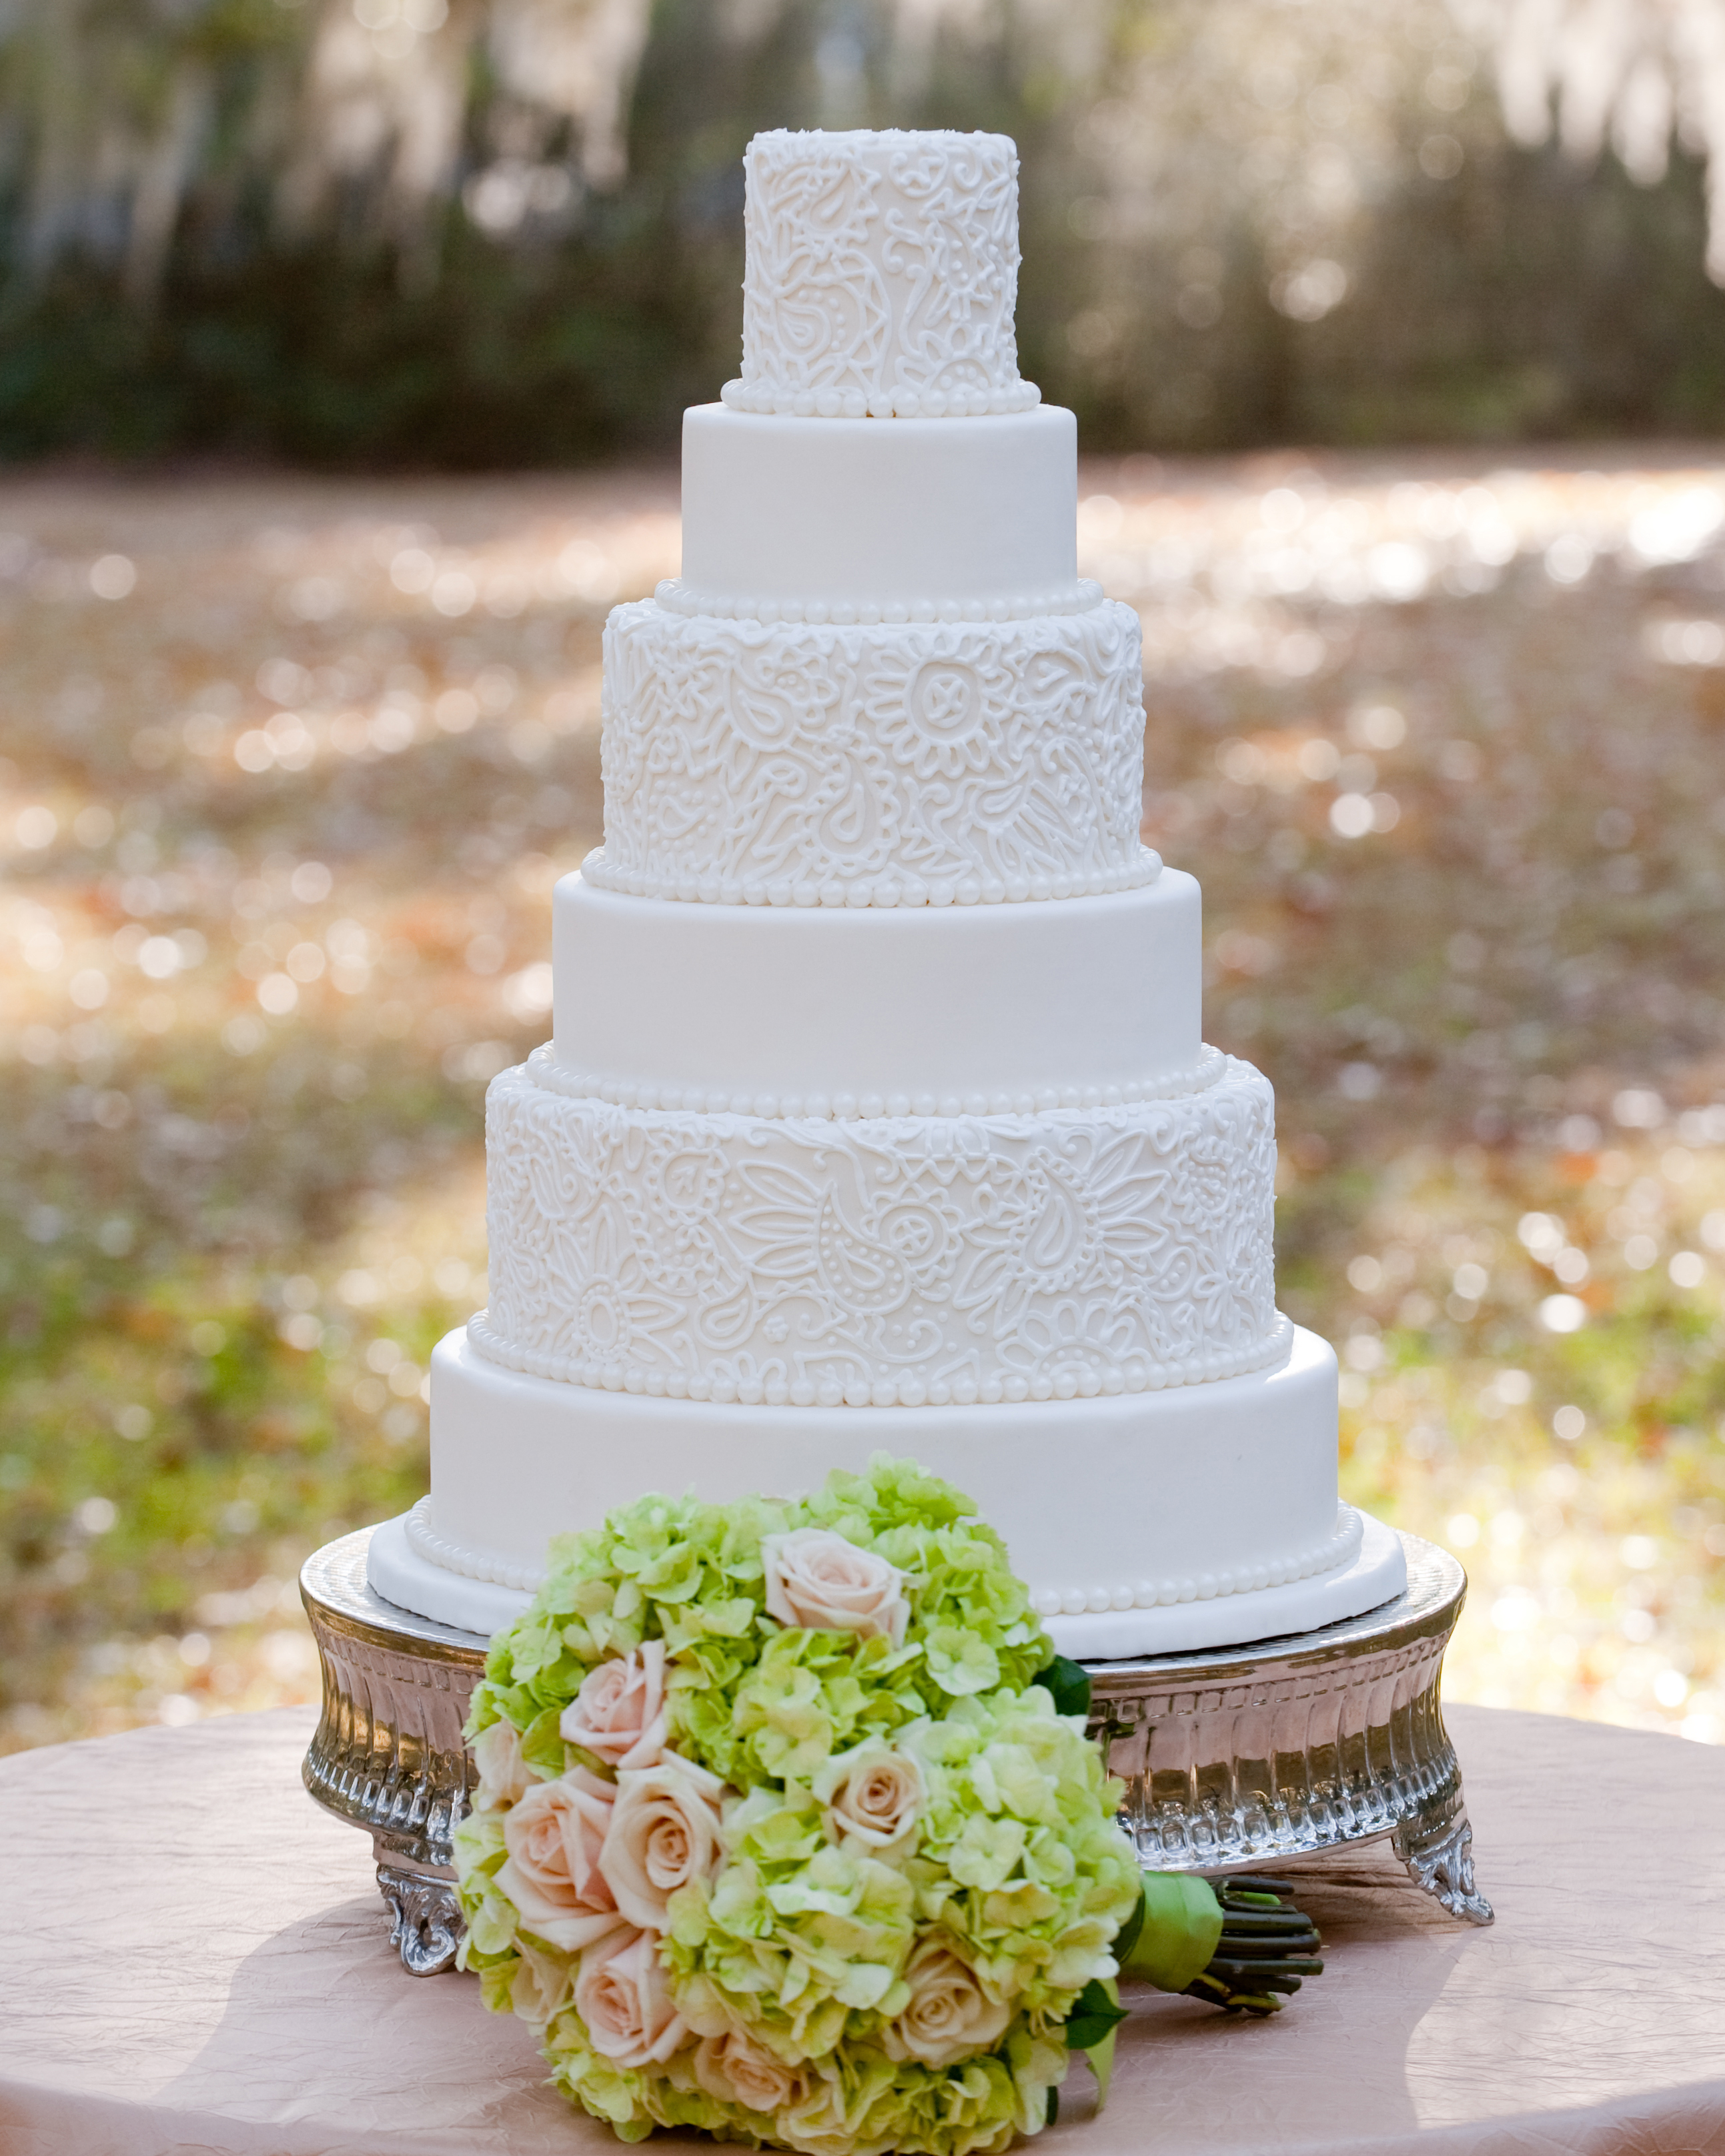 south-carolina-location-scout-wedding-cake-croissants-bistro-and-bakery-1114.jpg